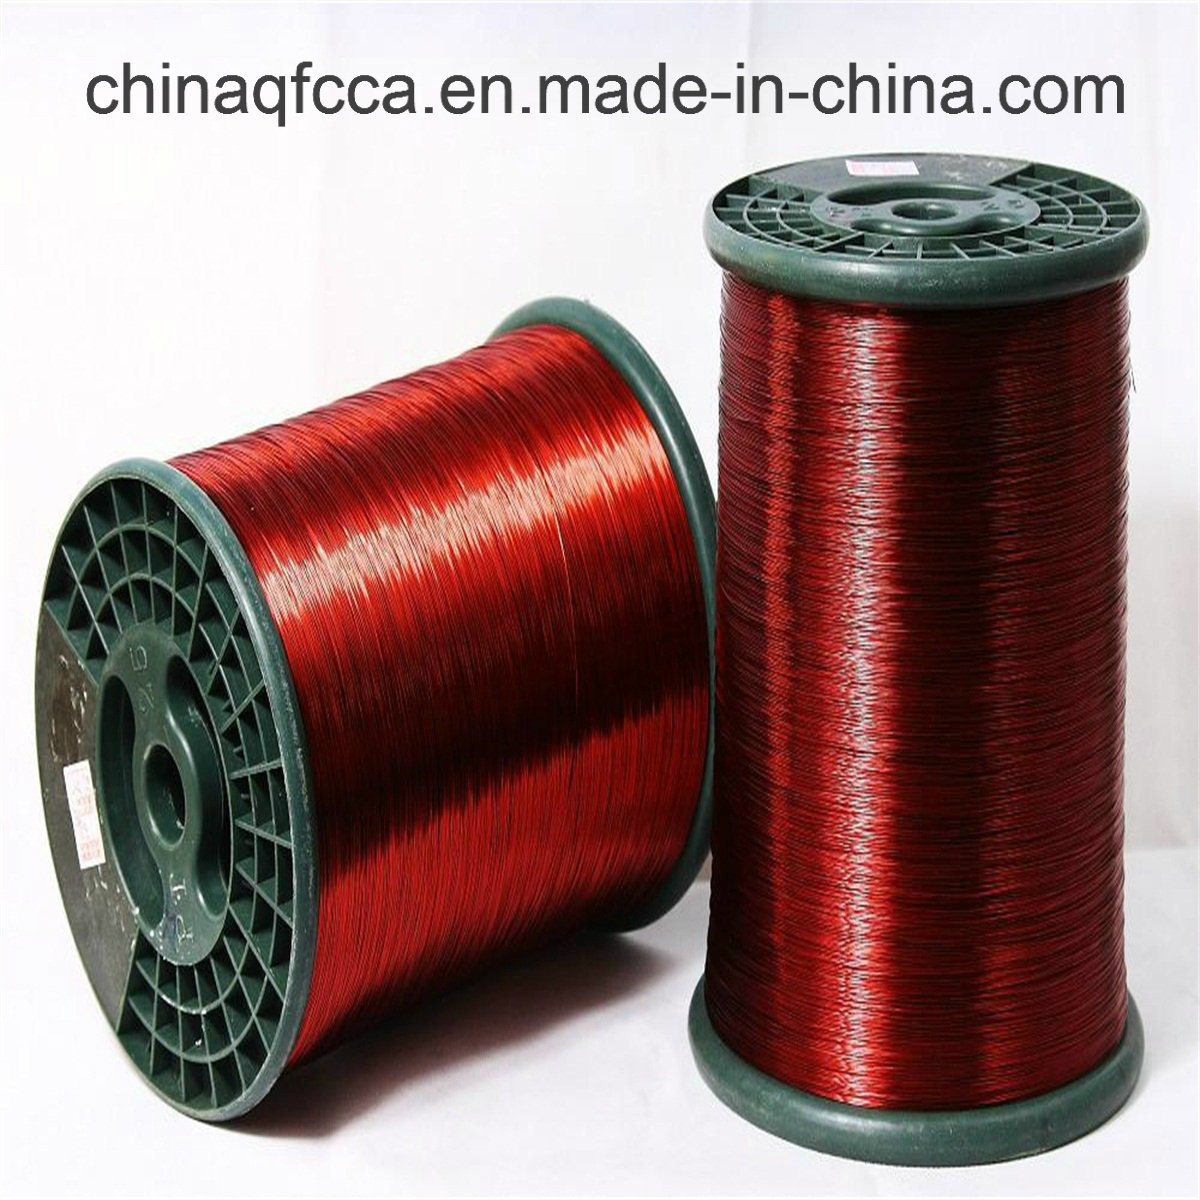 China Enameled Copper Wire 0.950mm - China Enameled Copper Wire ...